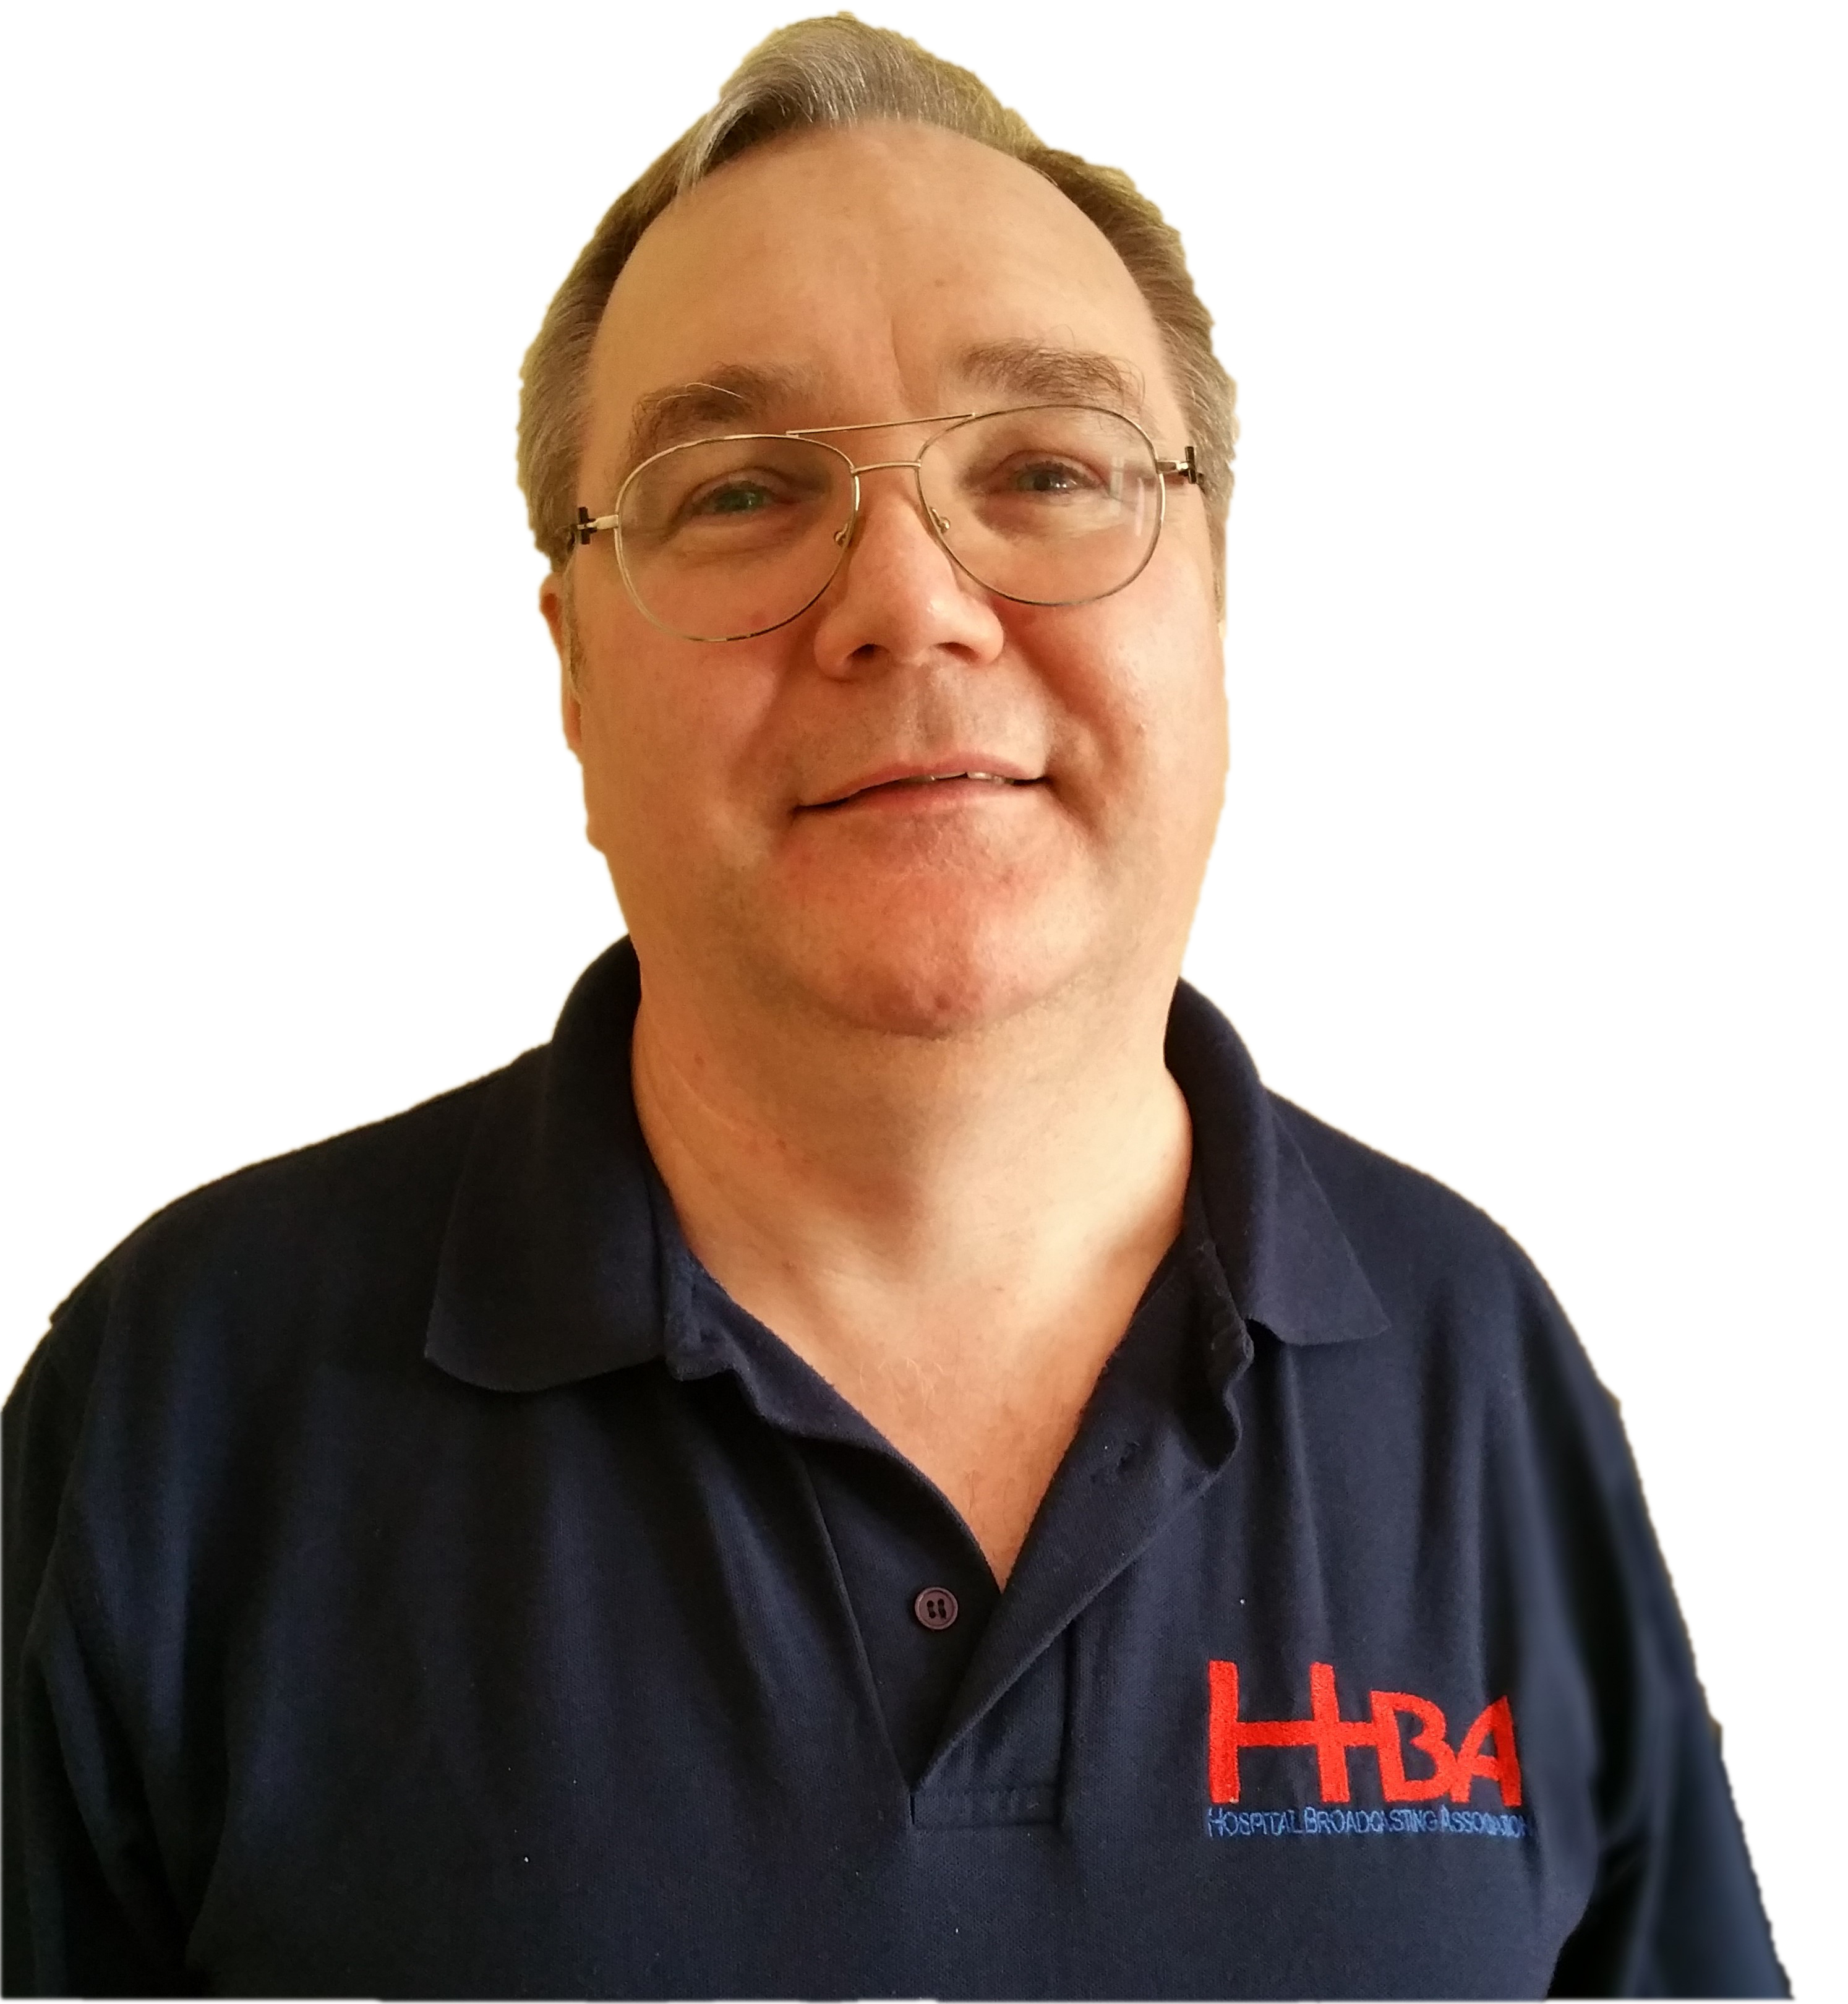 Nigel Dallard - HBA Specialist for Management & Charity Governance Advice